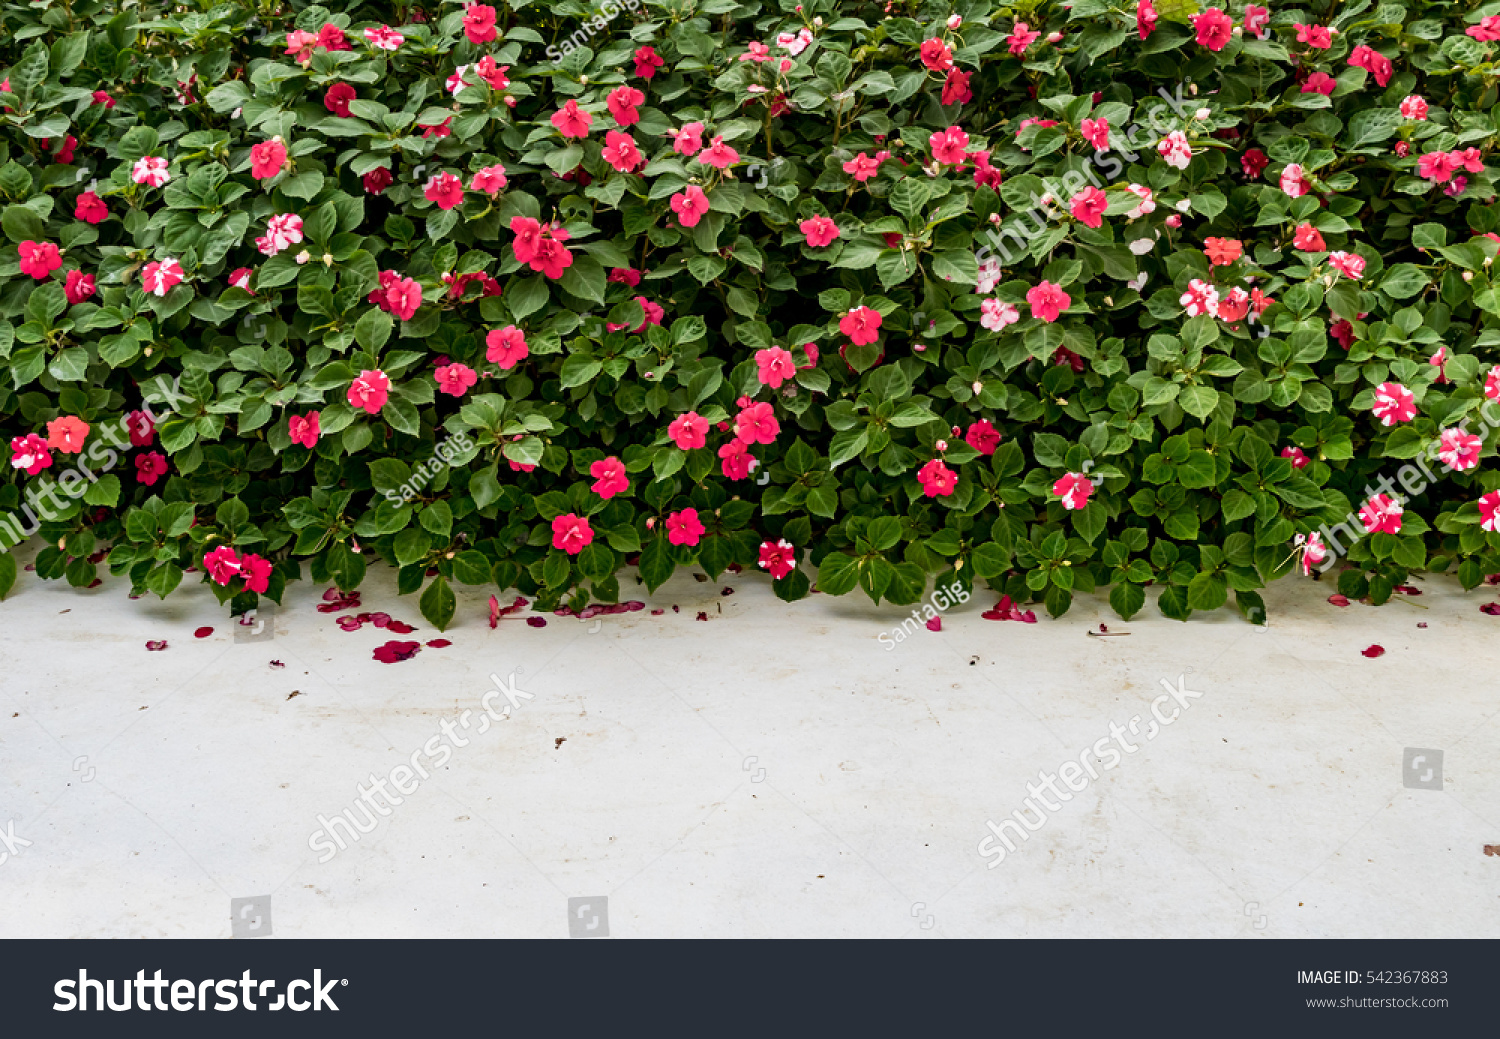 Red Flowers Green Bush Hedge Fence Stock Photo Edit Now 542367883